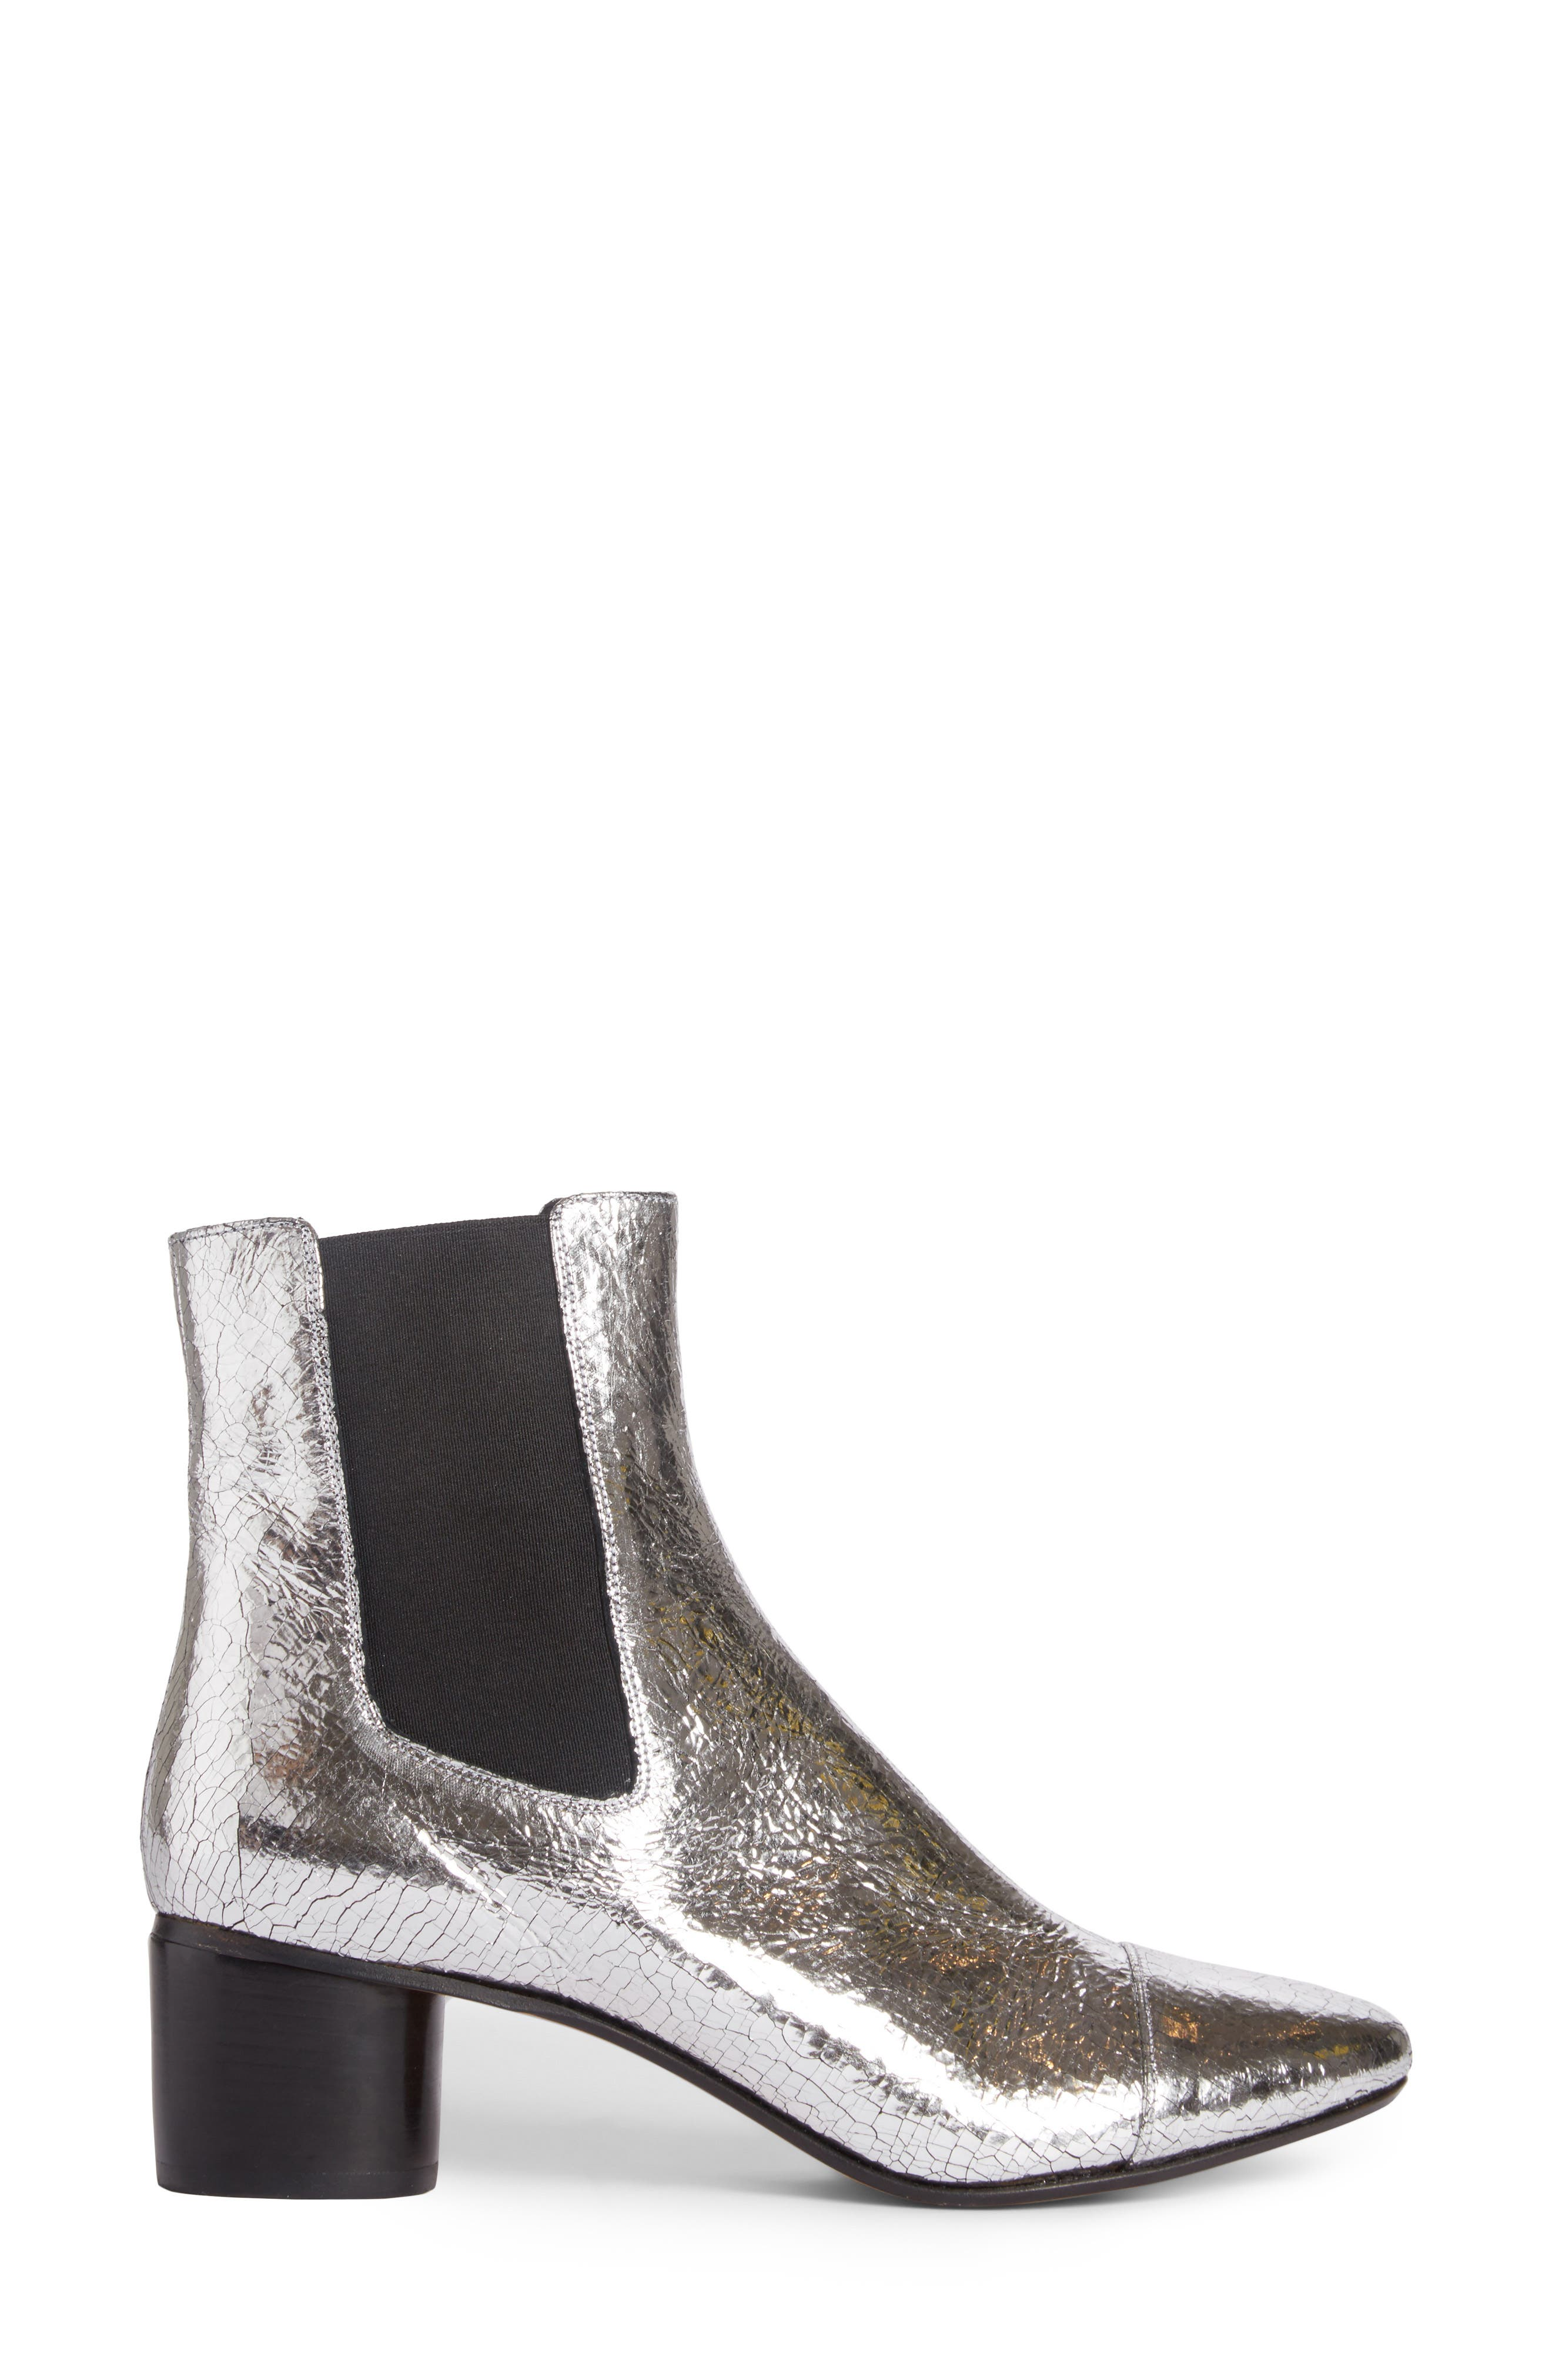 Danelya Chelsea Boot,                             Alternate thumbnail 3, color,                             049